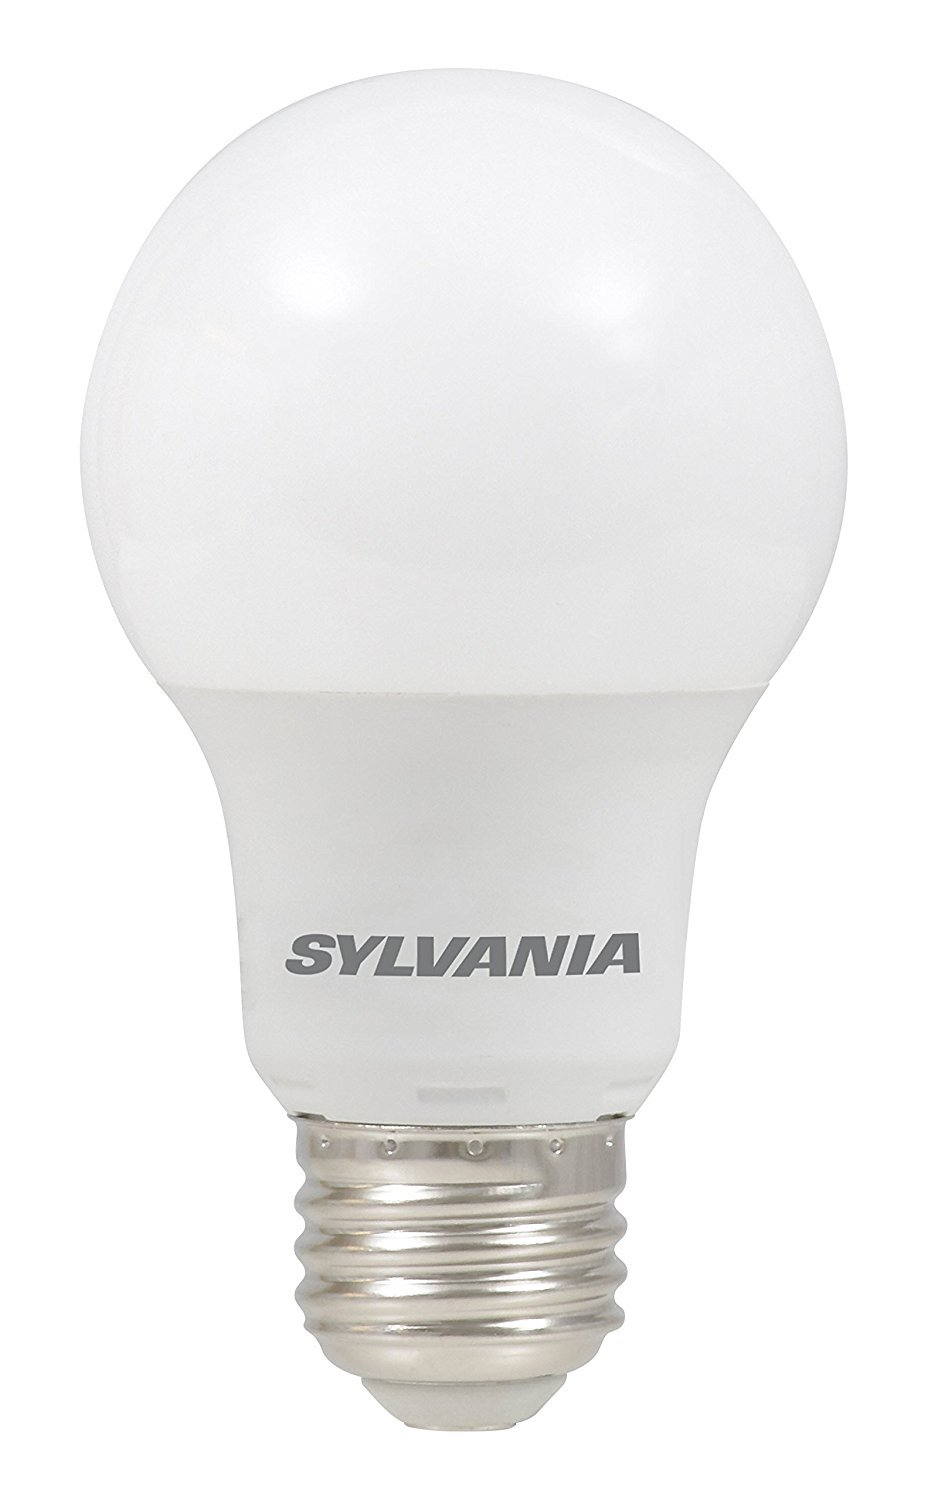 SYLVANIA, 40W Equivalent, LED Light Bulb, A19 Lamp, 1 Pack, Daylight, Energy Saving & Longer Life, Value Line, Medium Base, Efficient 6W, 5000K